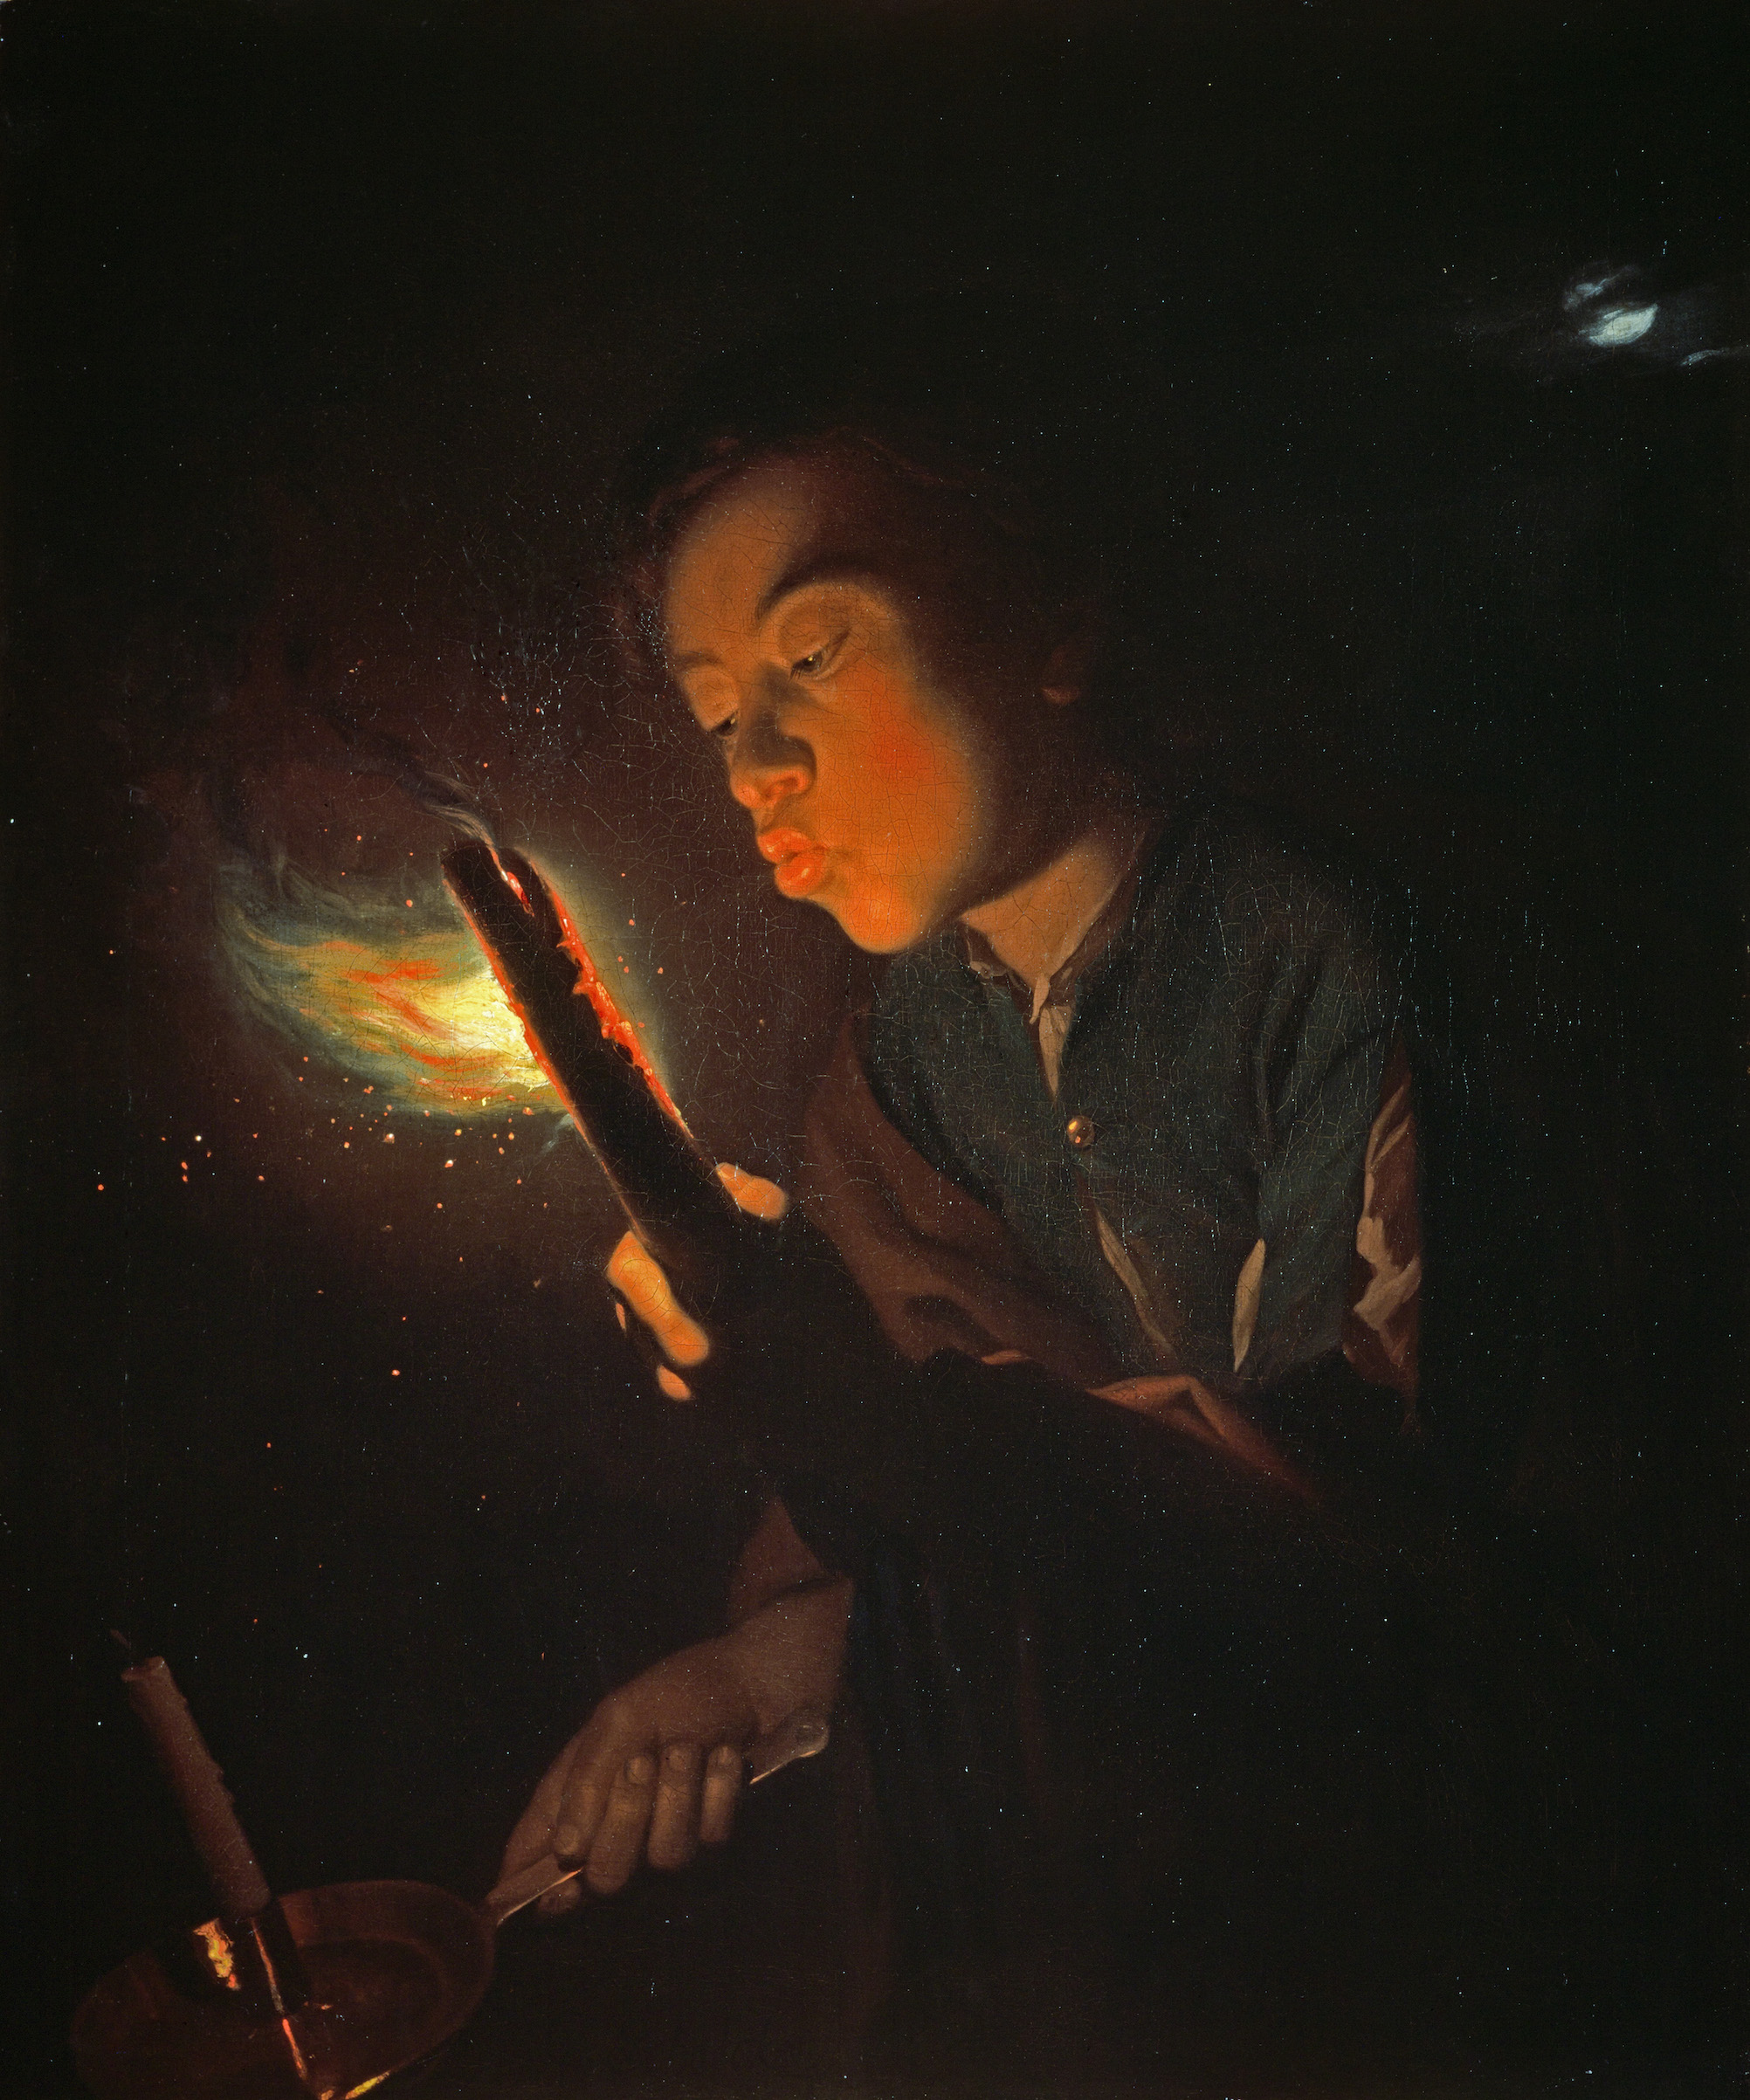 A Boy Blowing on a Firebrand to Light a Candle, by Godfried Schalcken, 1692 - 1698. Oil on canvas. Purchased with the assistance of the Art Fund and the National Heritage Memorial Fund 1989  . (Photo by National Galleries Of Scotland/Getty Images)